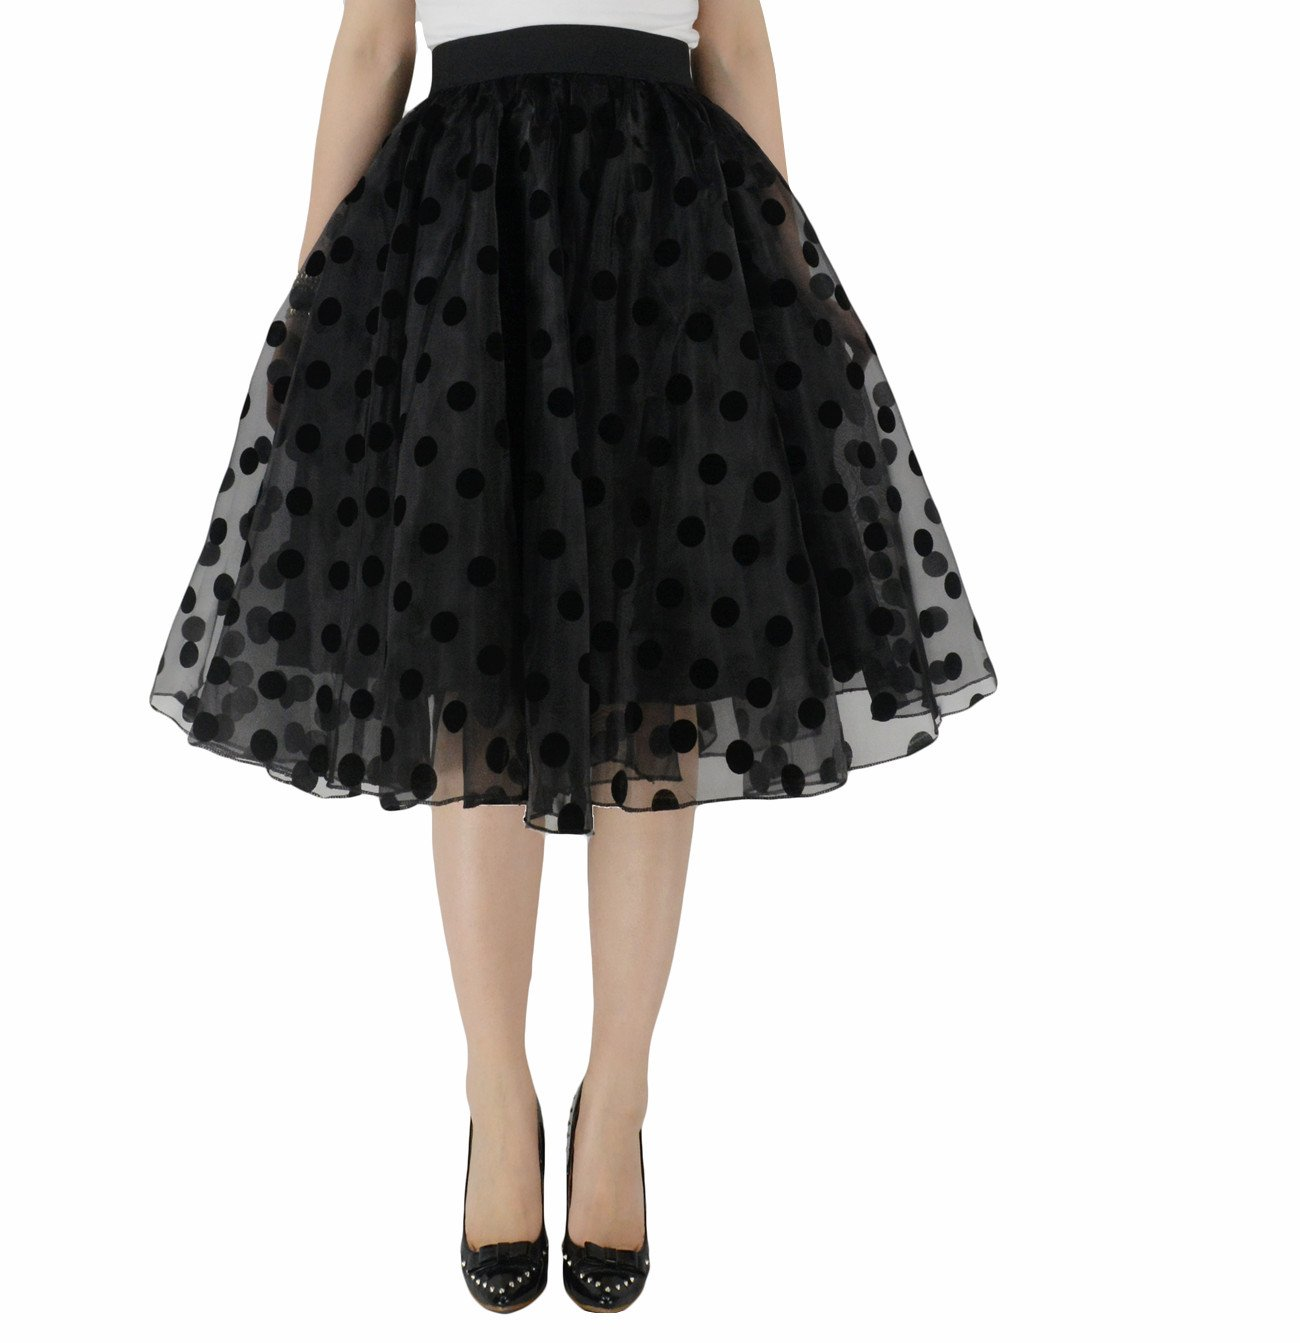 YSJERA Lady's Organza Princess Skirt Bowknot A Line Pleated Midi/Knee Length Tutu Party Skirts (XS, Polka Dot Black)